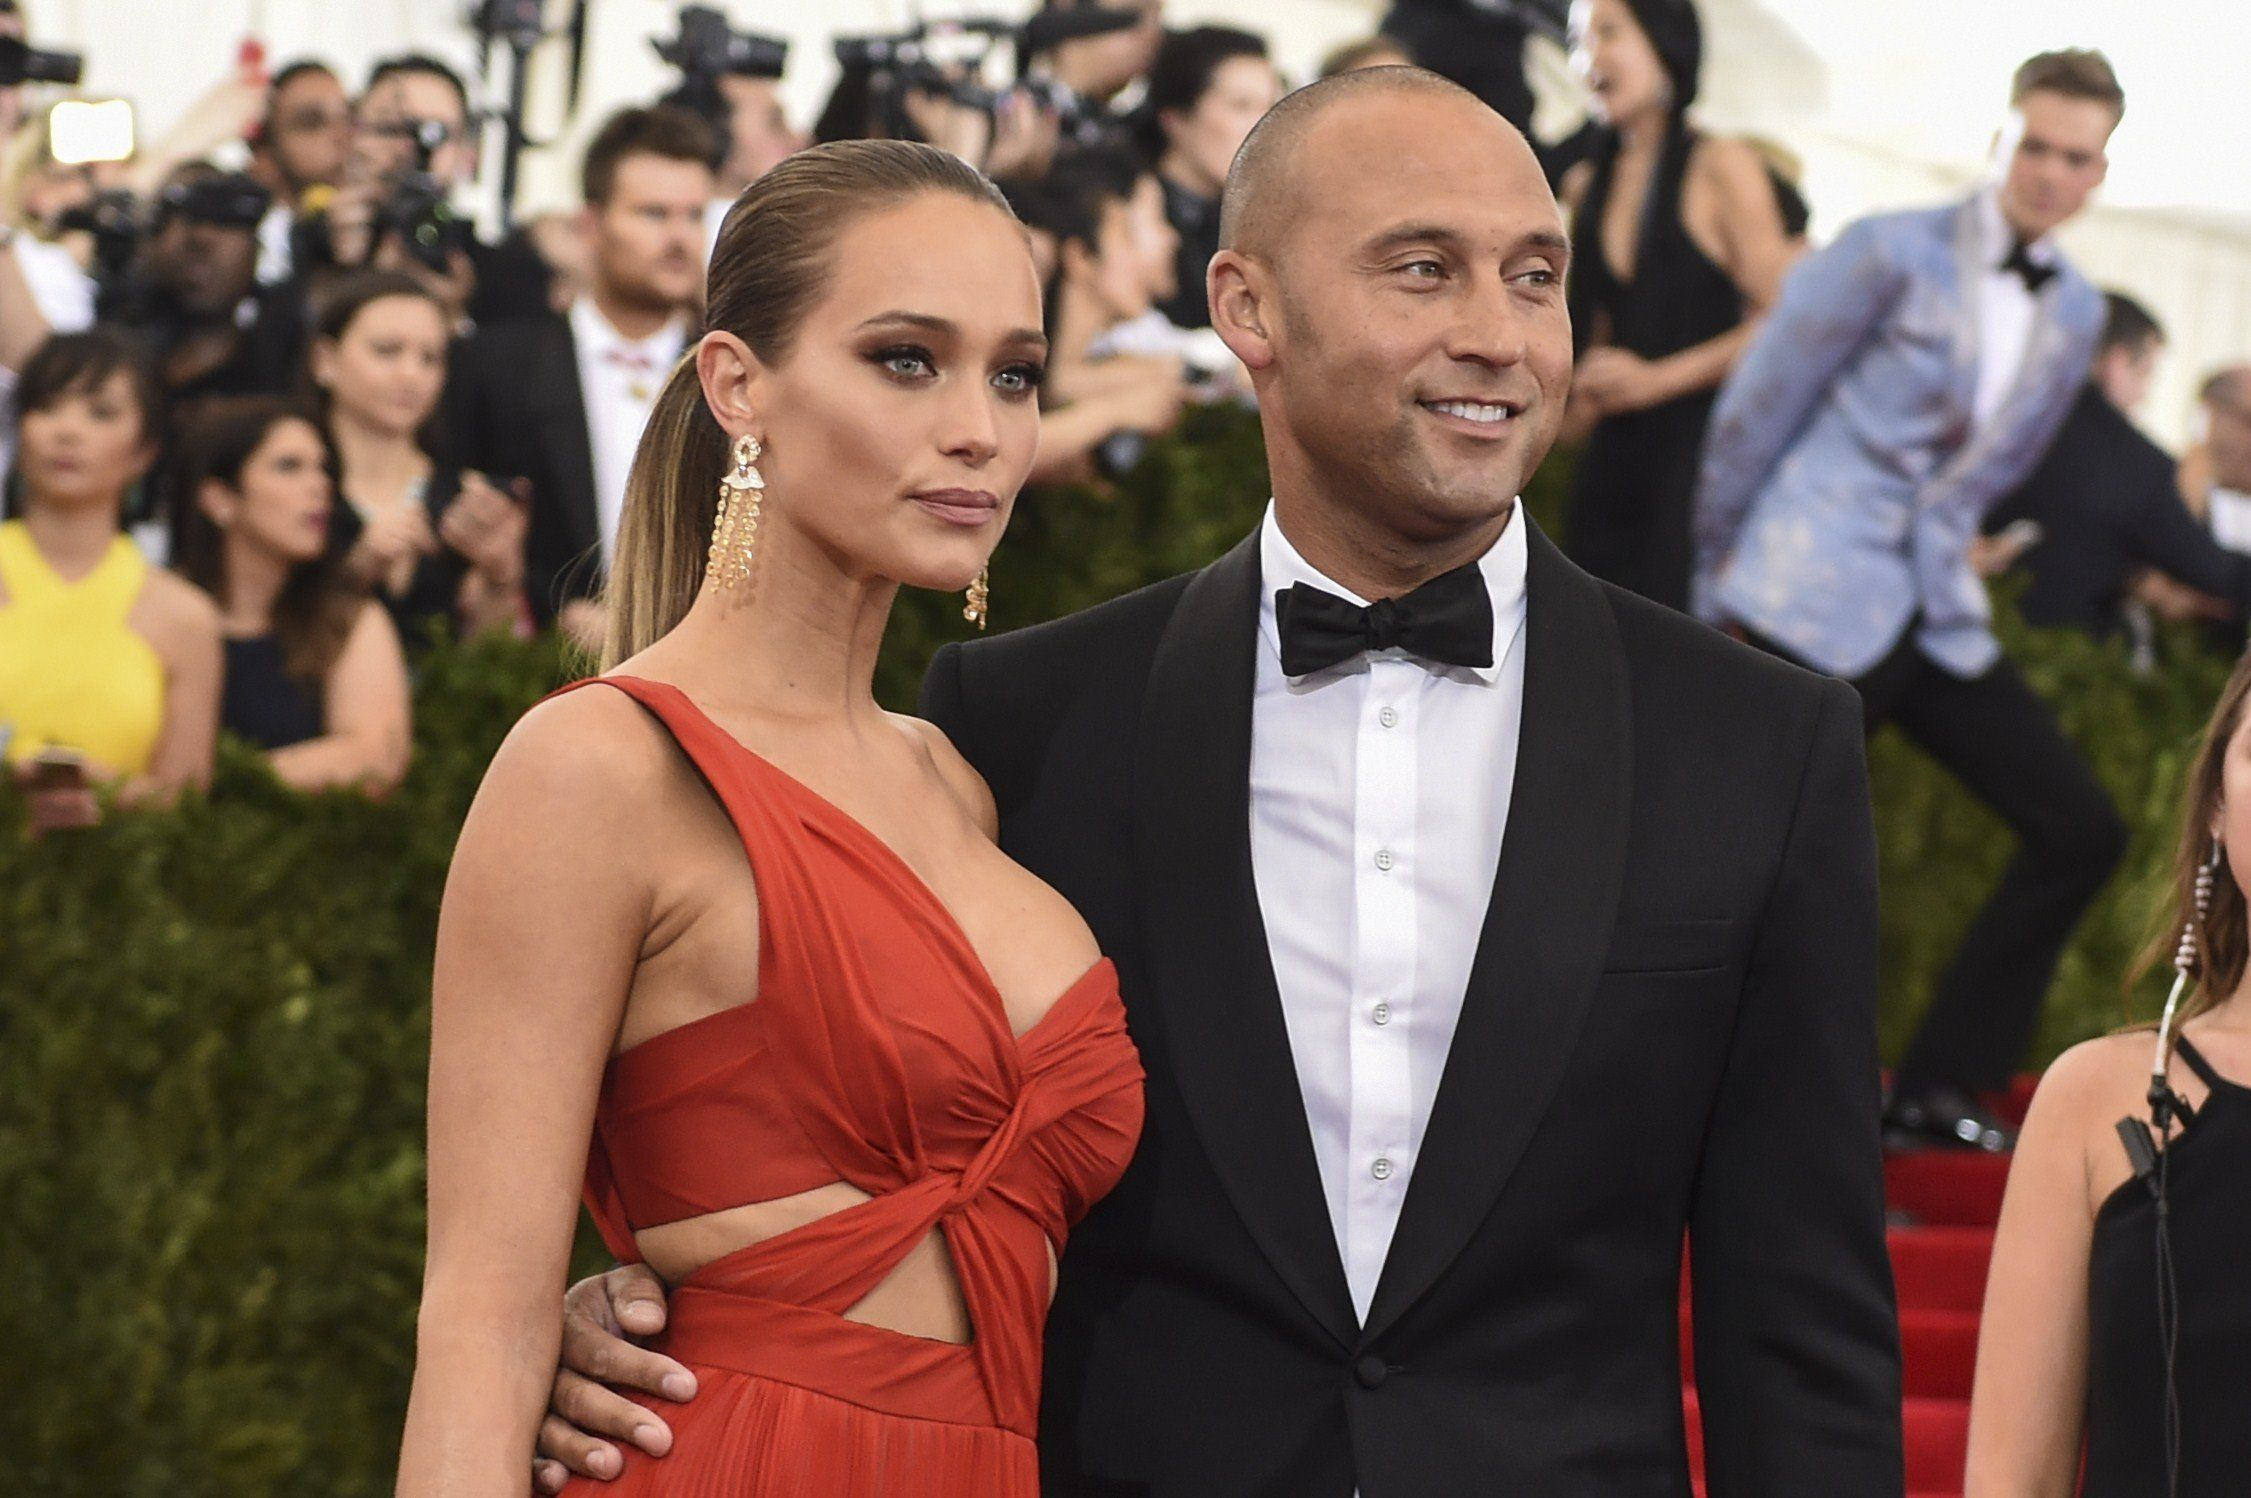 Derek Jeter and Hannah Davis arrive at the Costume Institute Gala BenefitonMay 5, 2015, in New York.